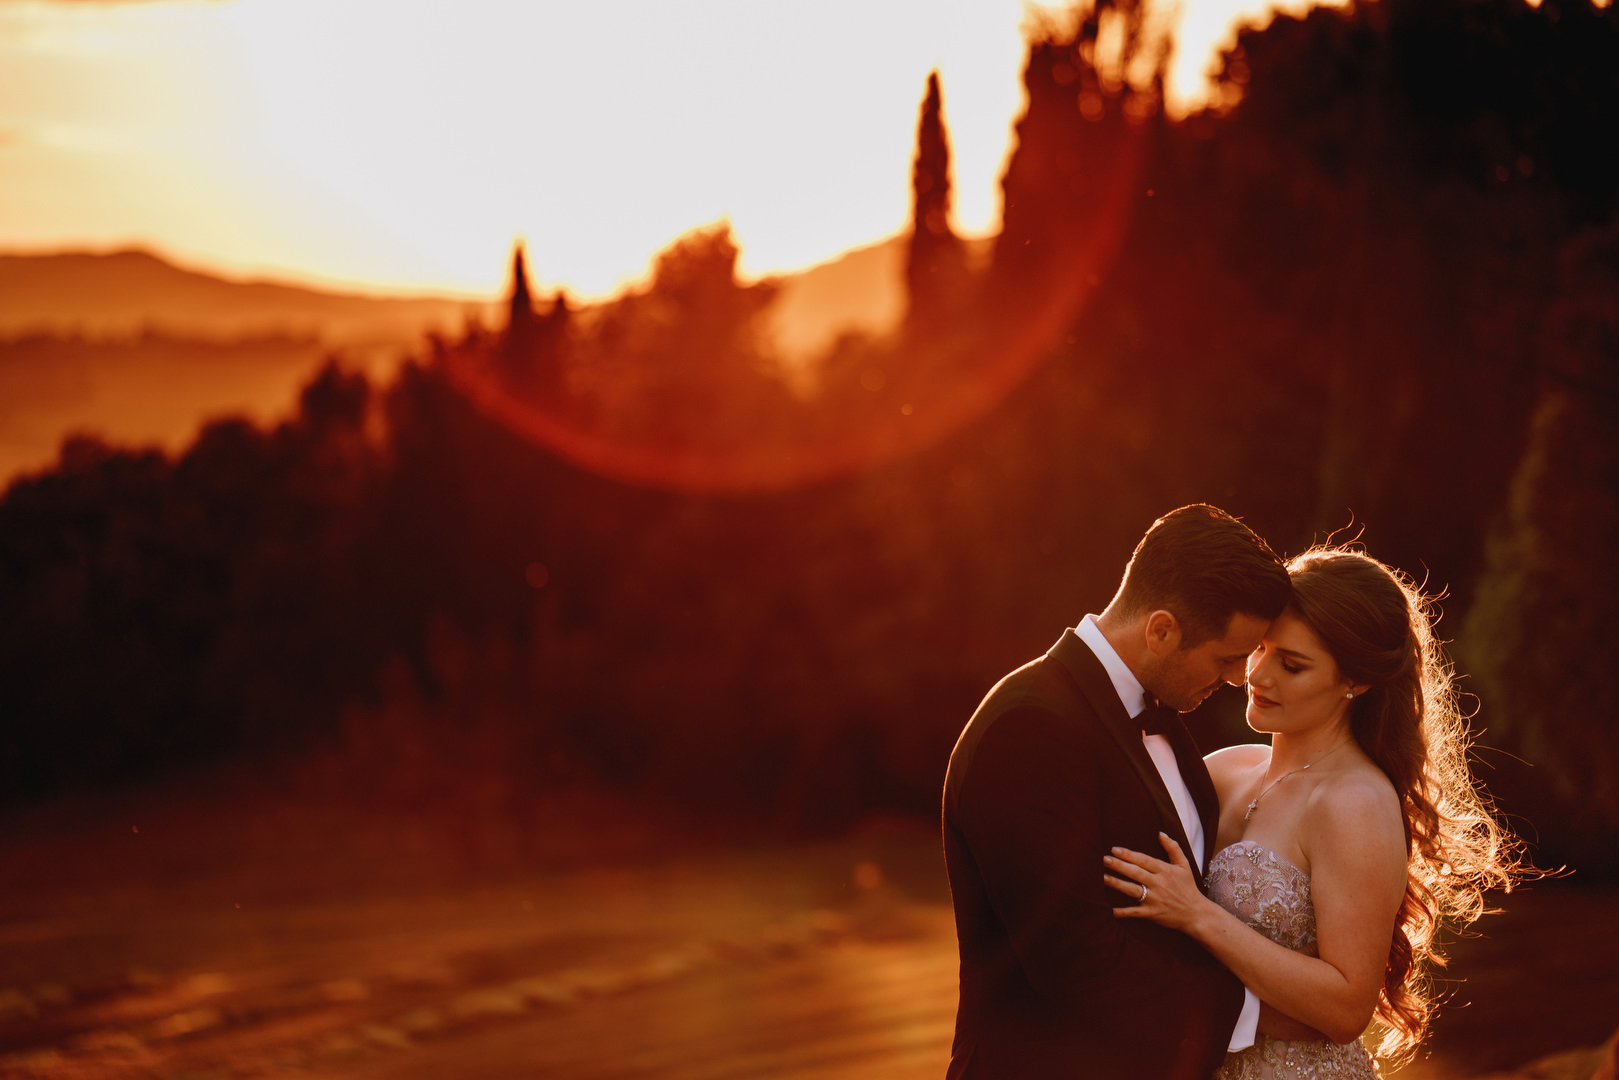 Sony A7iii Review for Wedding Photographers - Sample Image